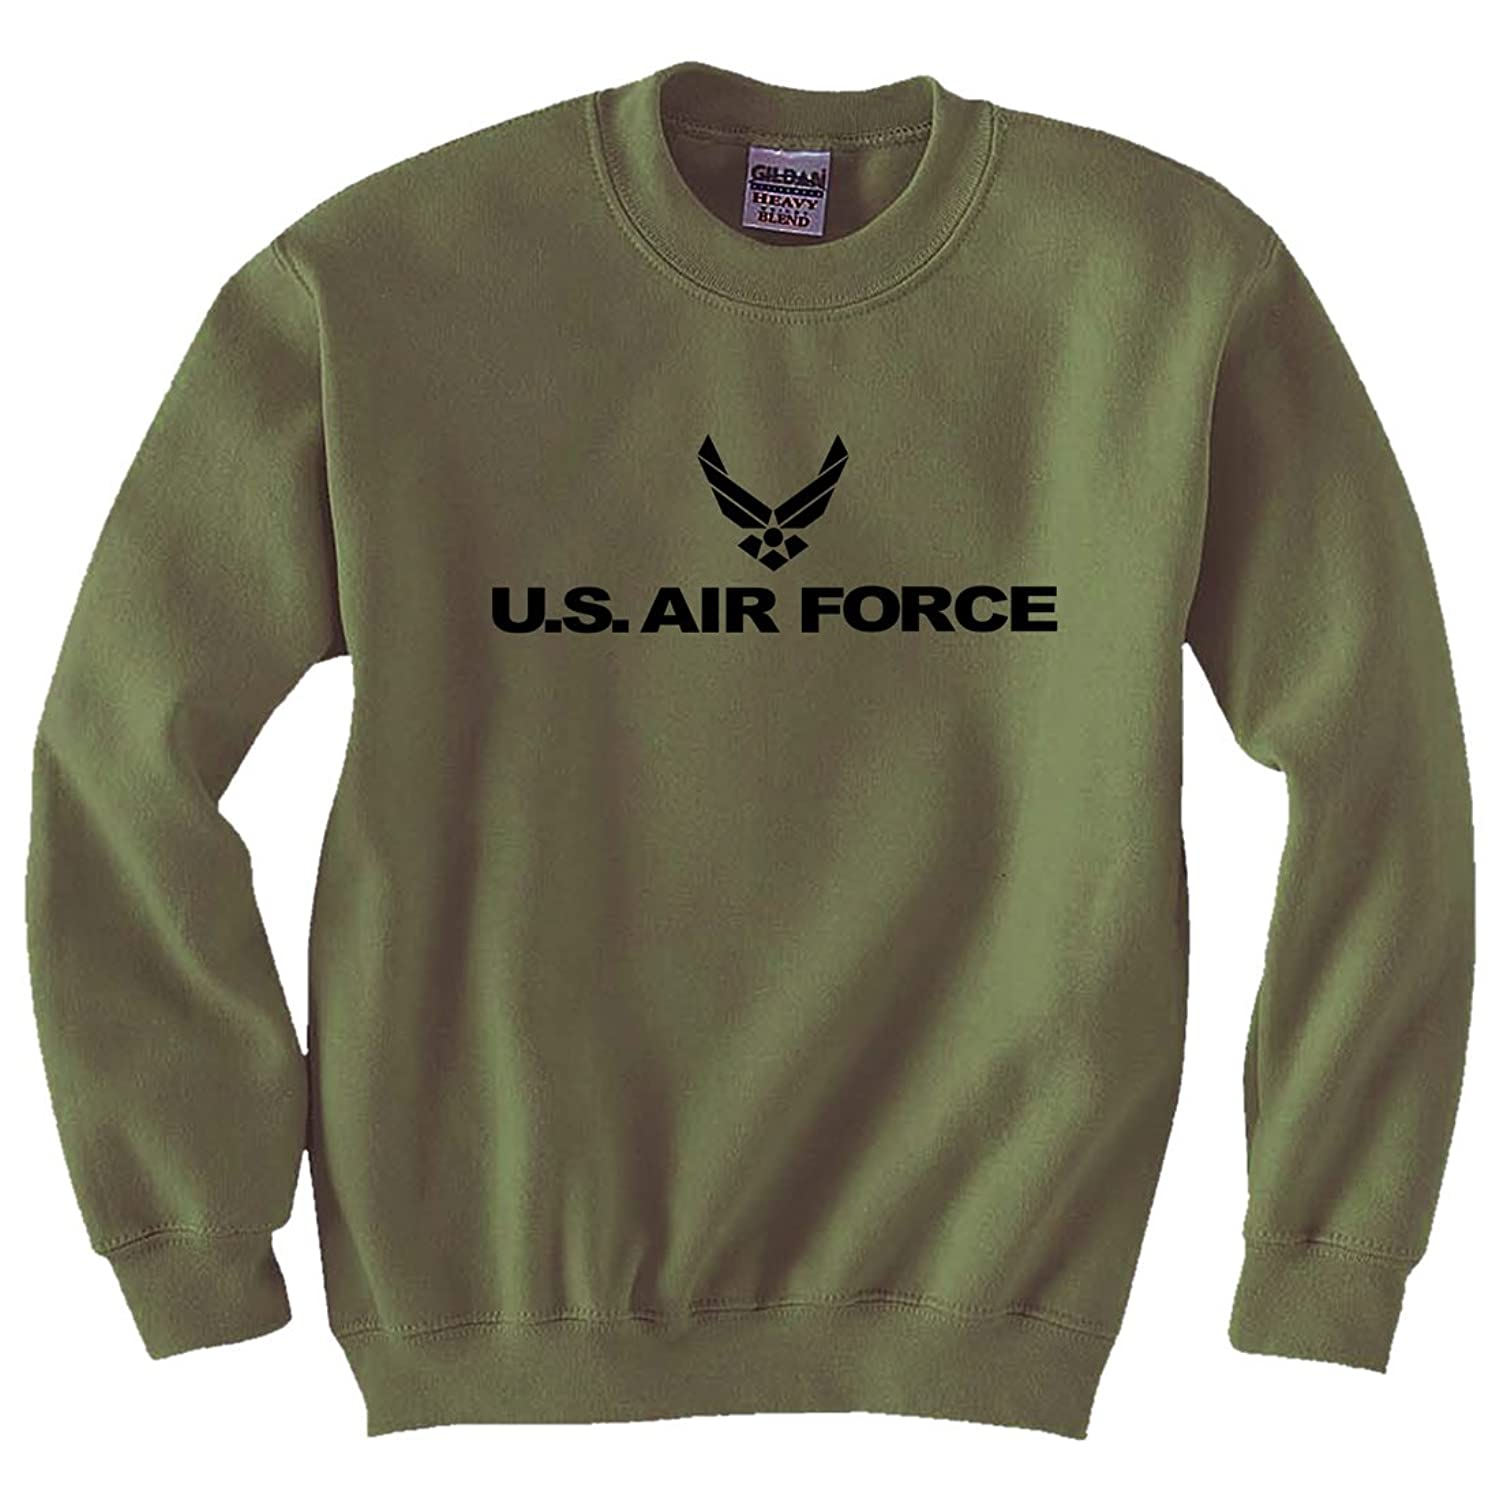 Air Force - Military Style Physical Training Crewneck Sweatshirt in Military Green